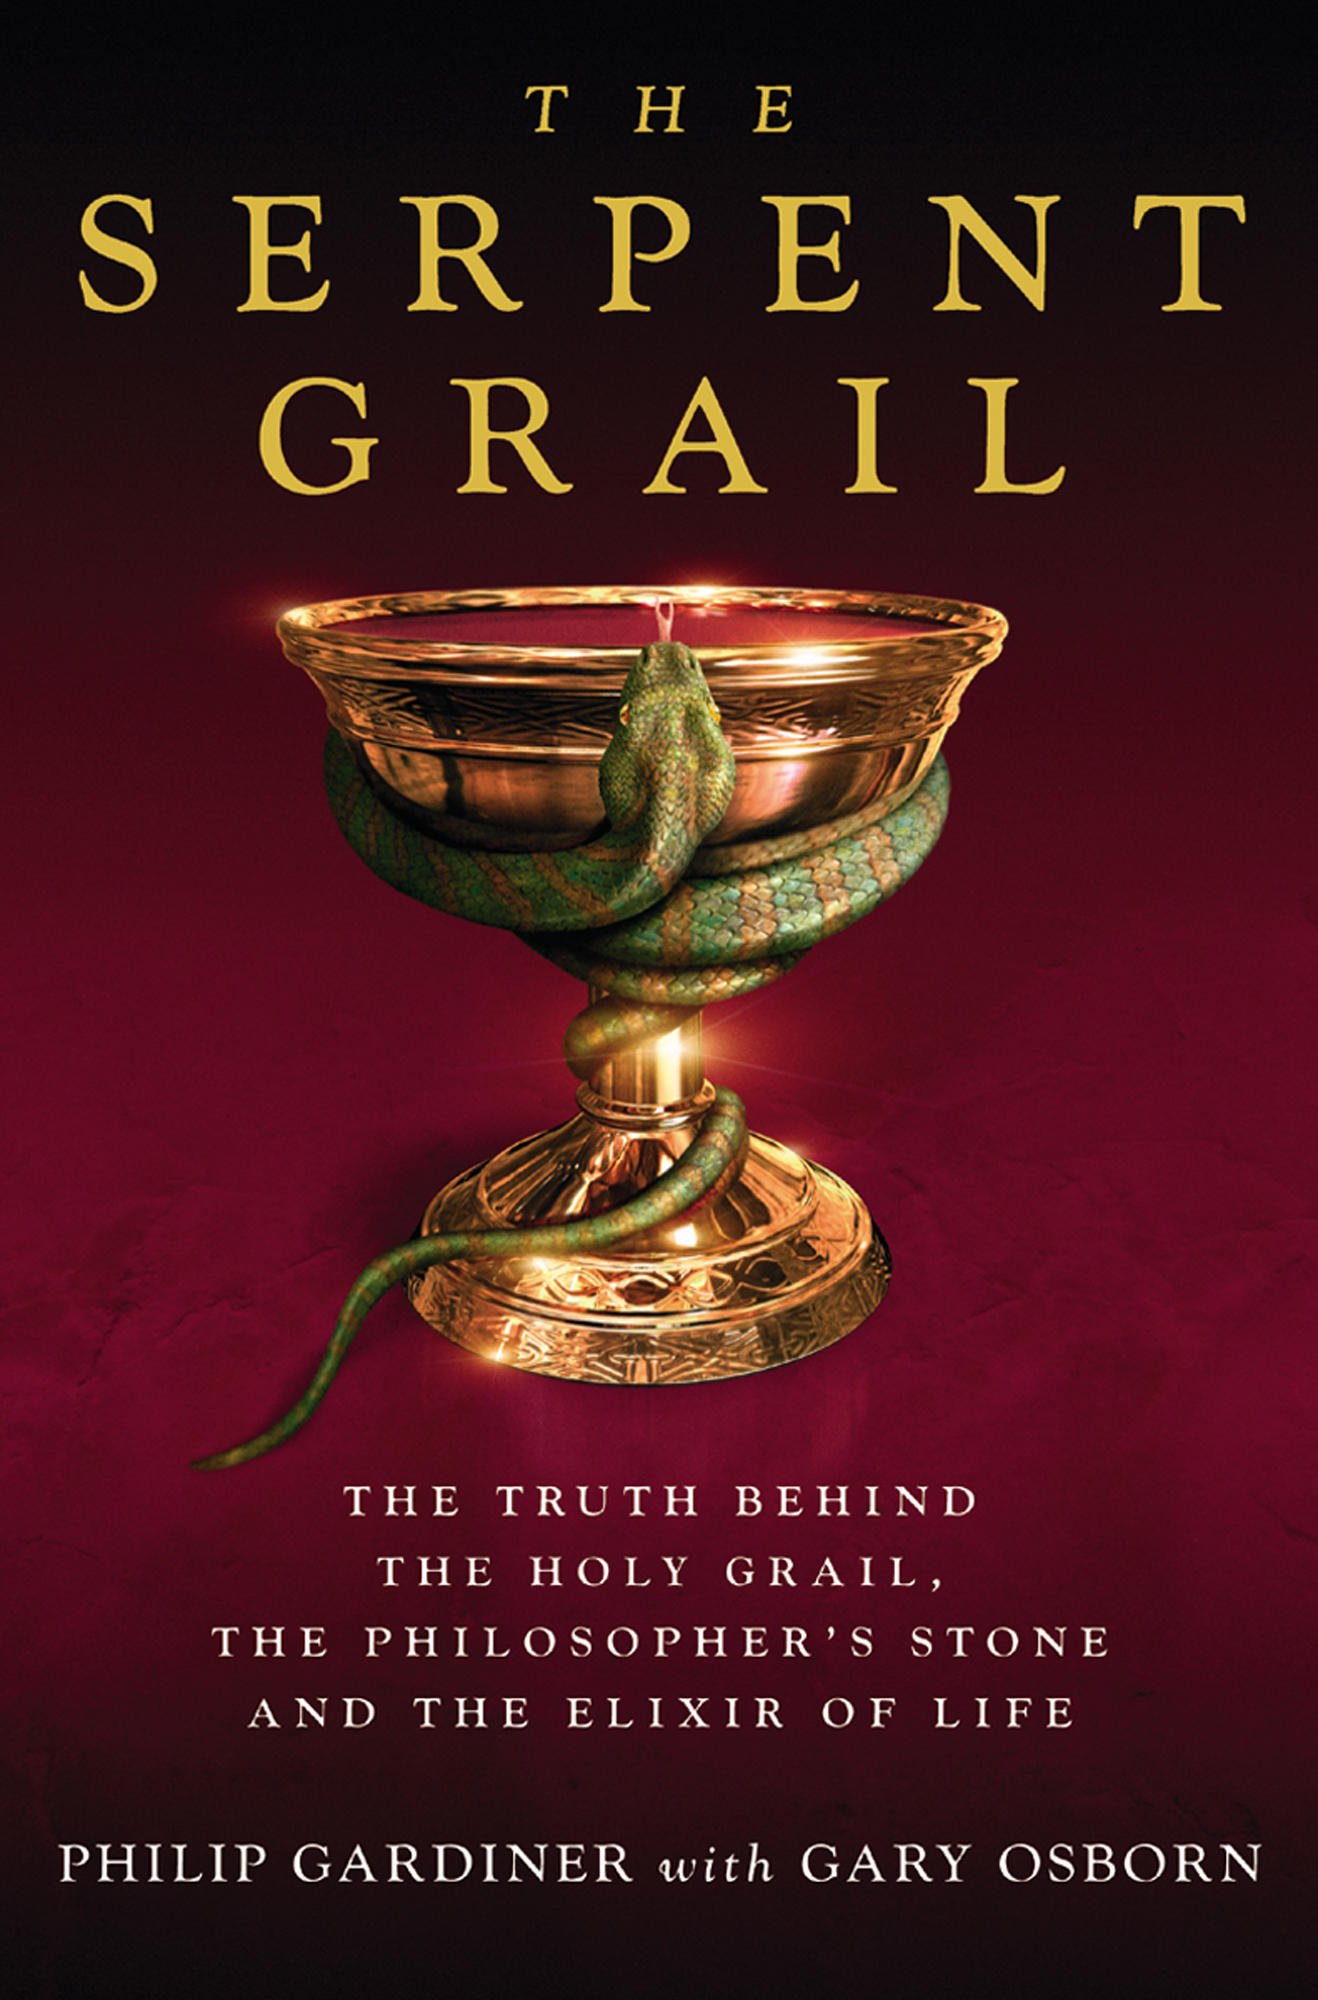 The Serpent Grail